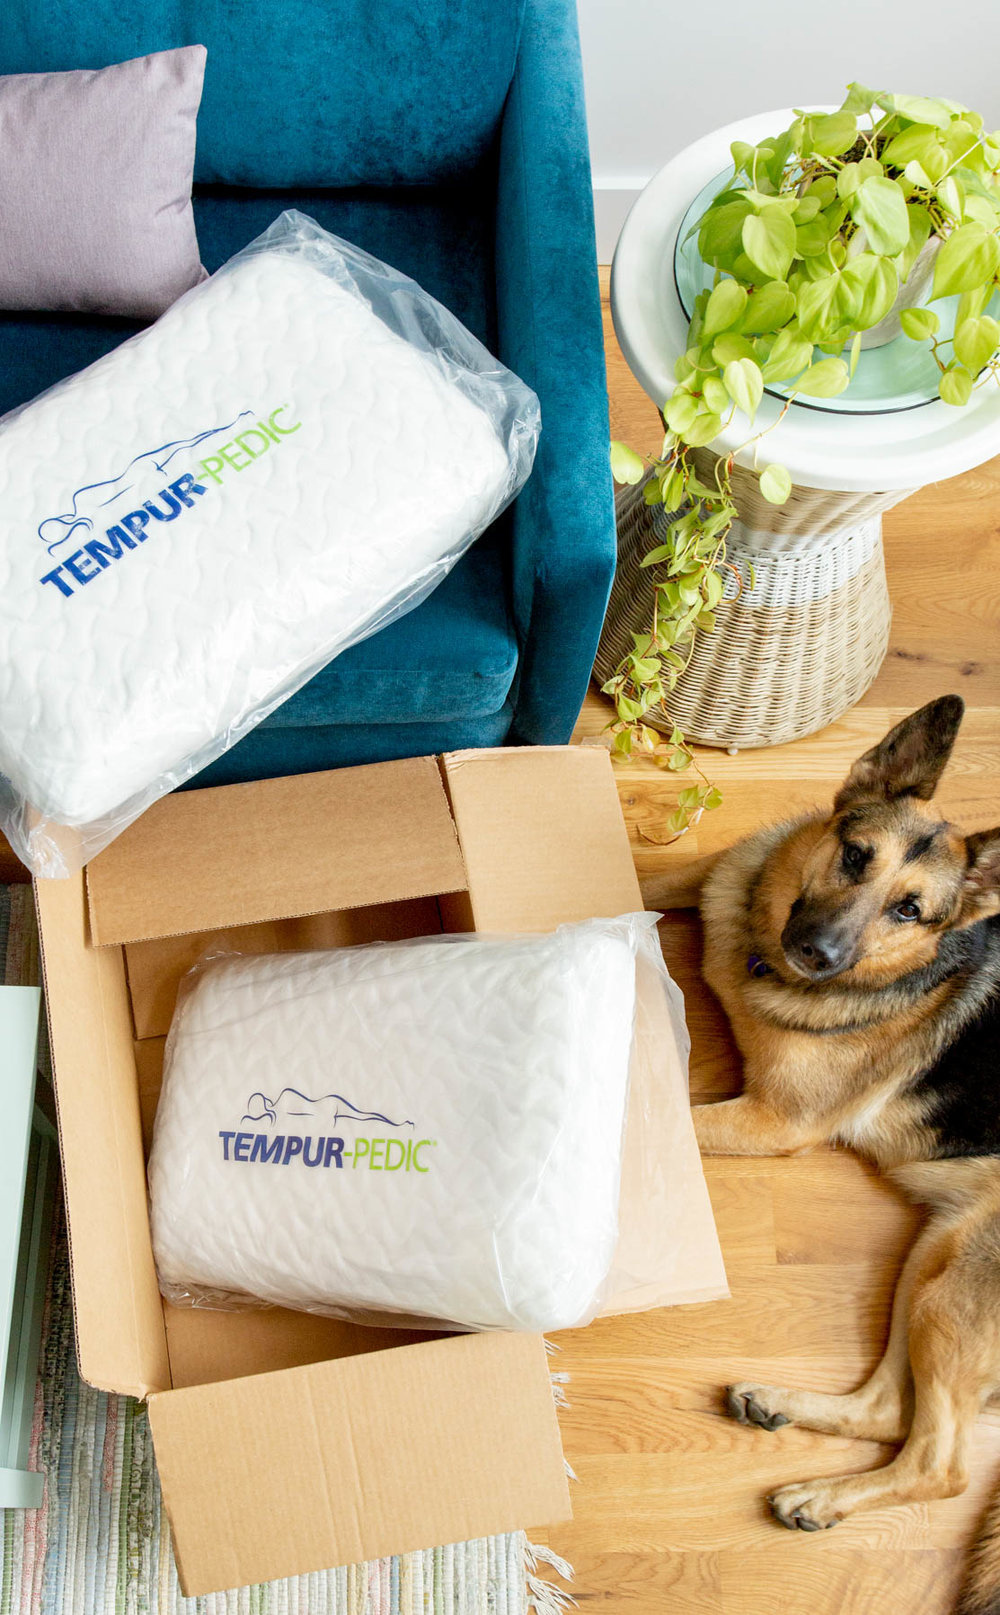 tempur-pedic-pillow-campaign-1.jpg